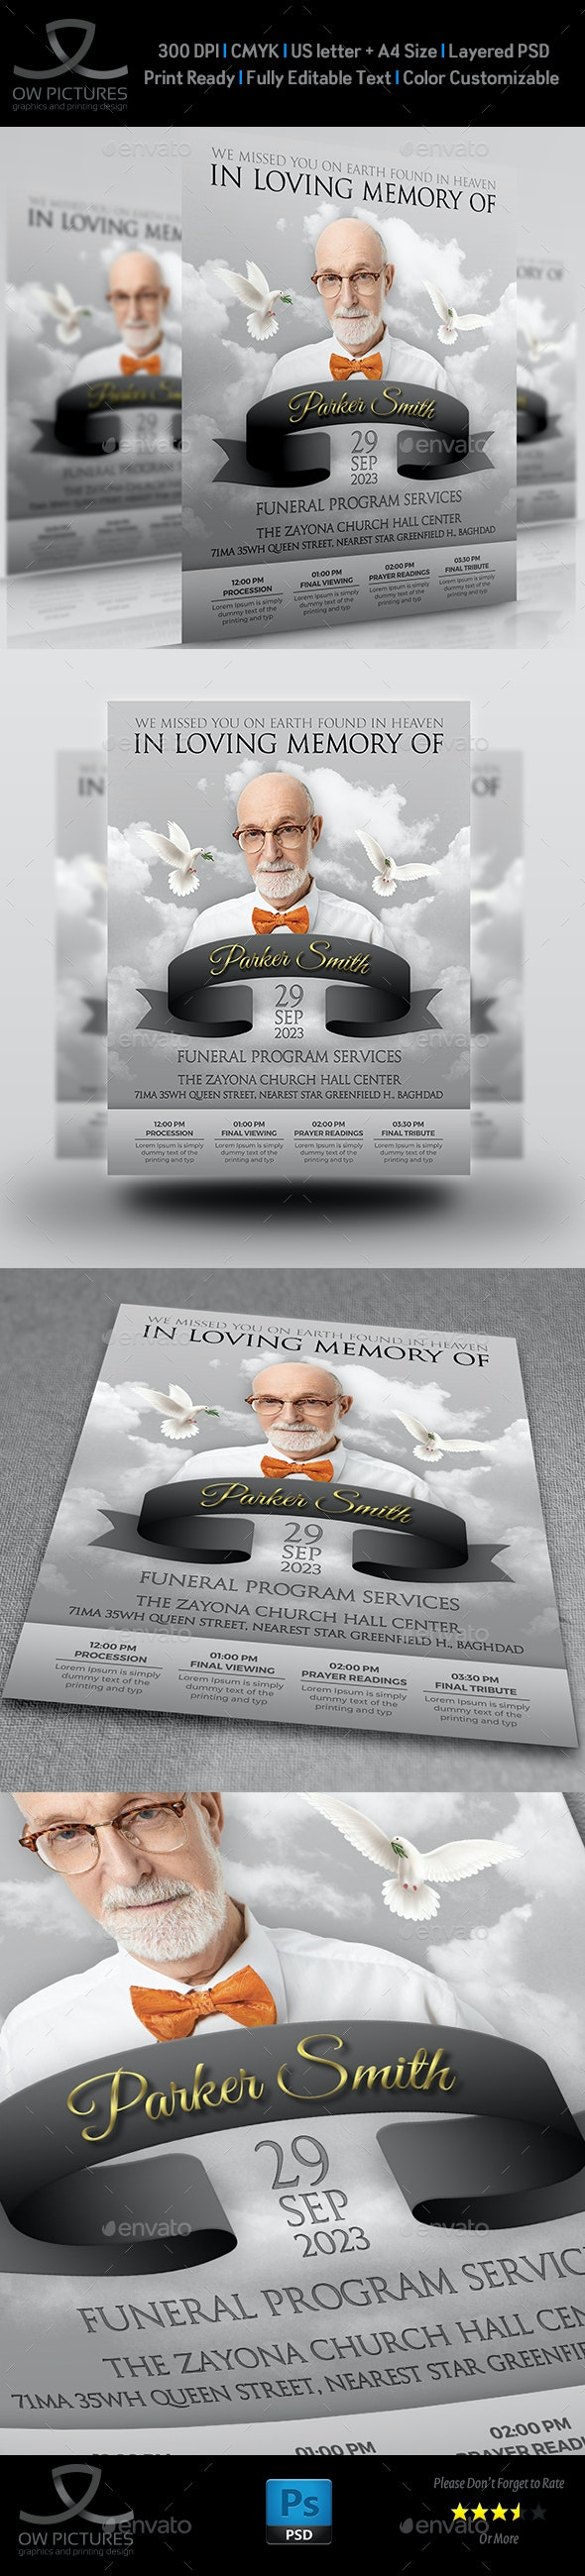 Memorial and Funeral Program Flyer Template - Flyers Print Templates